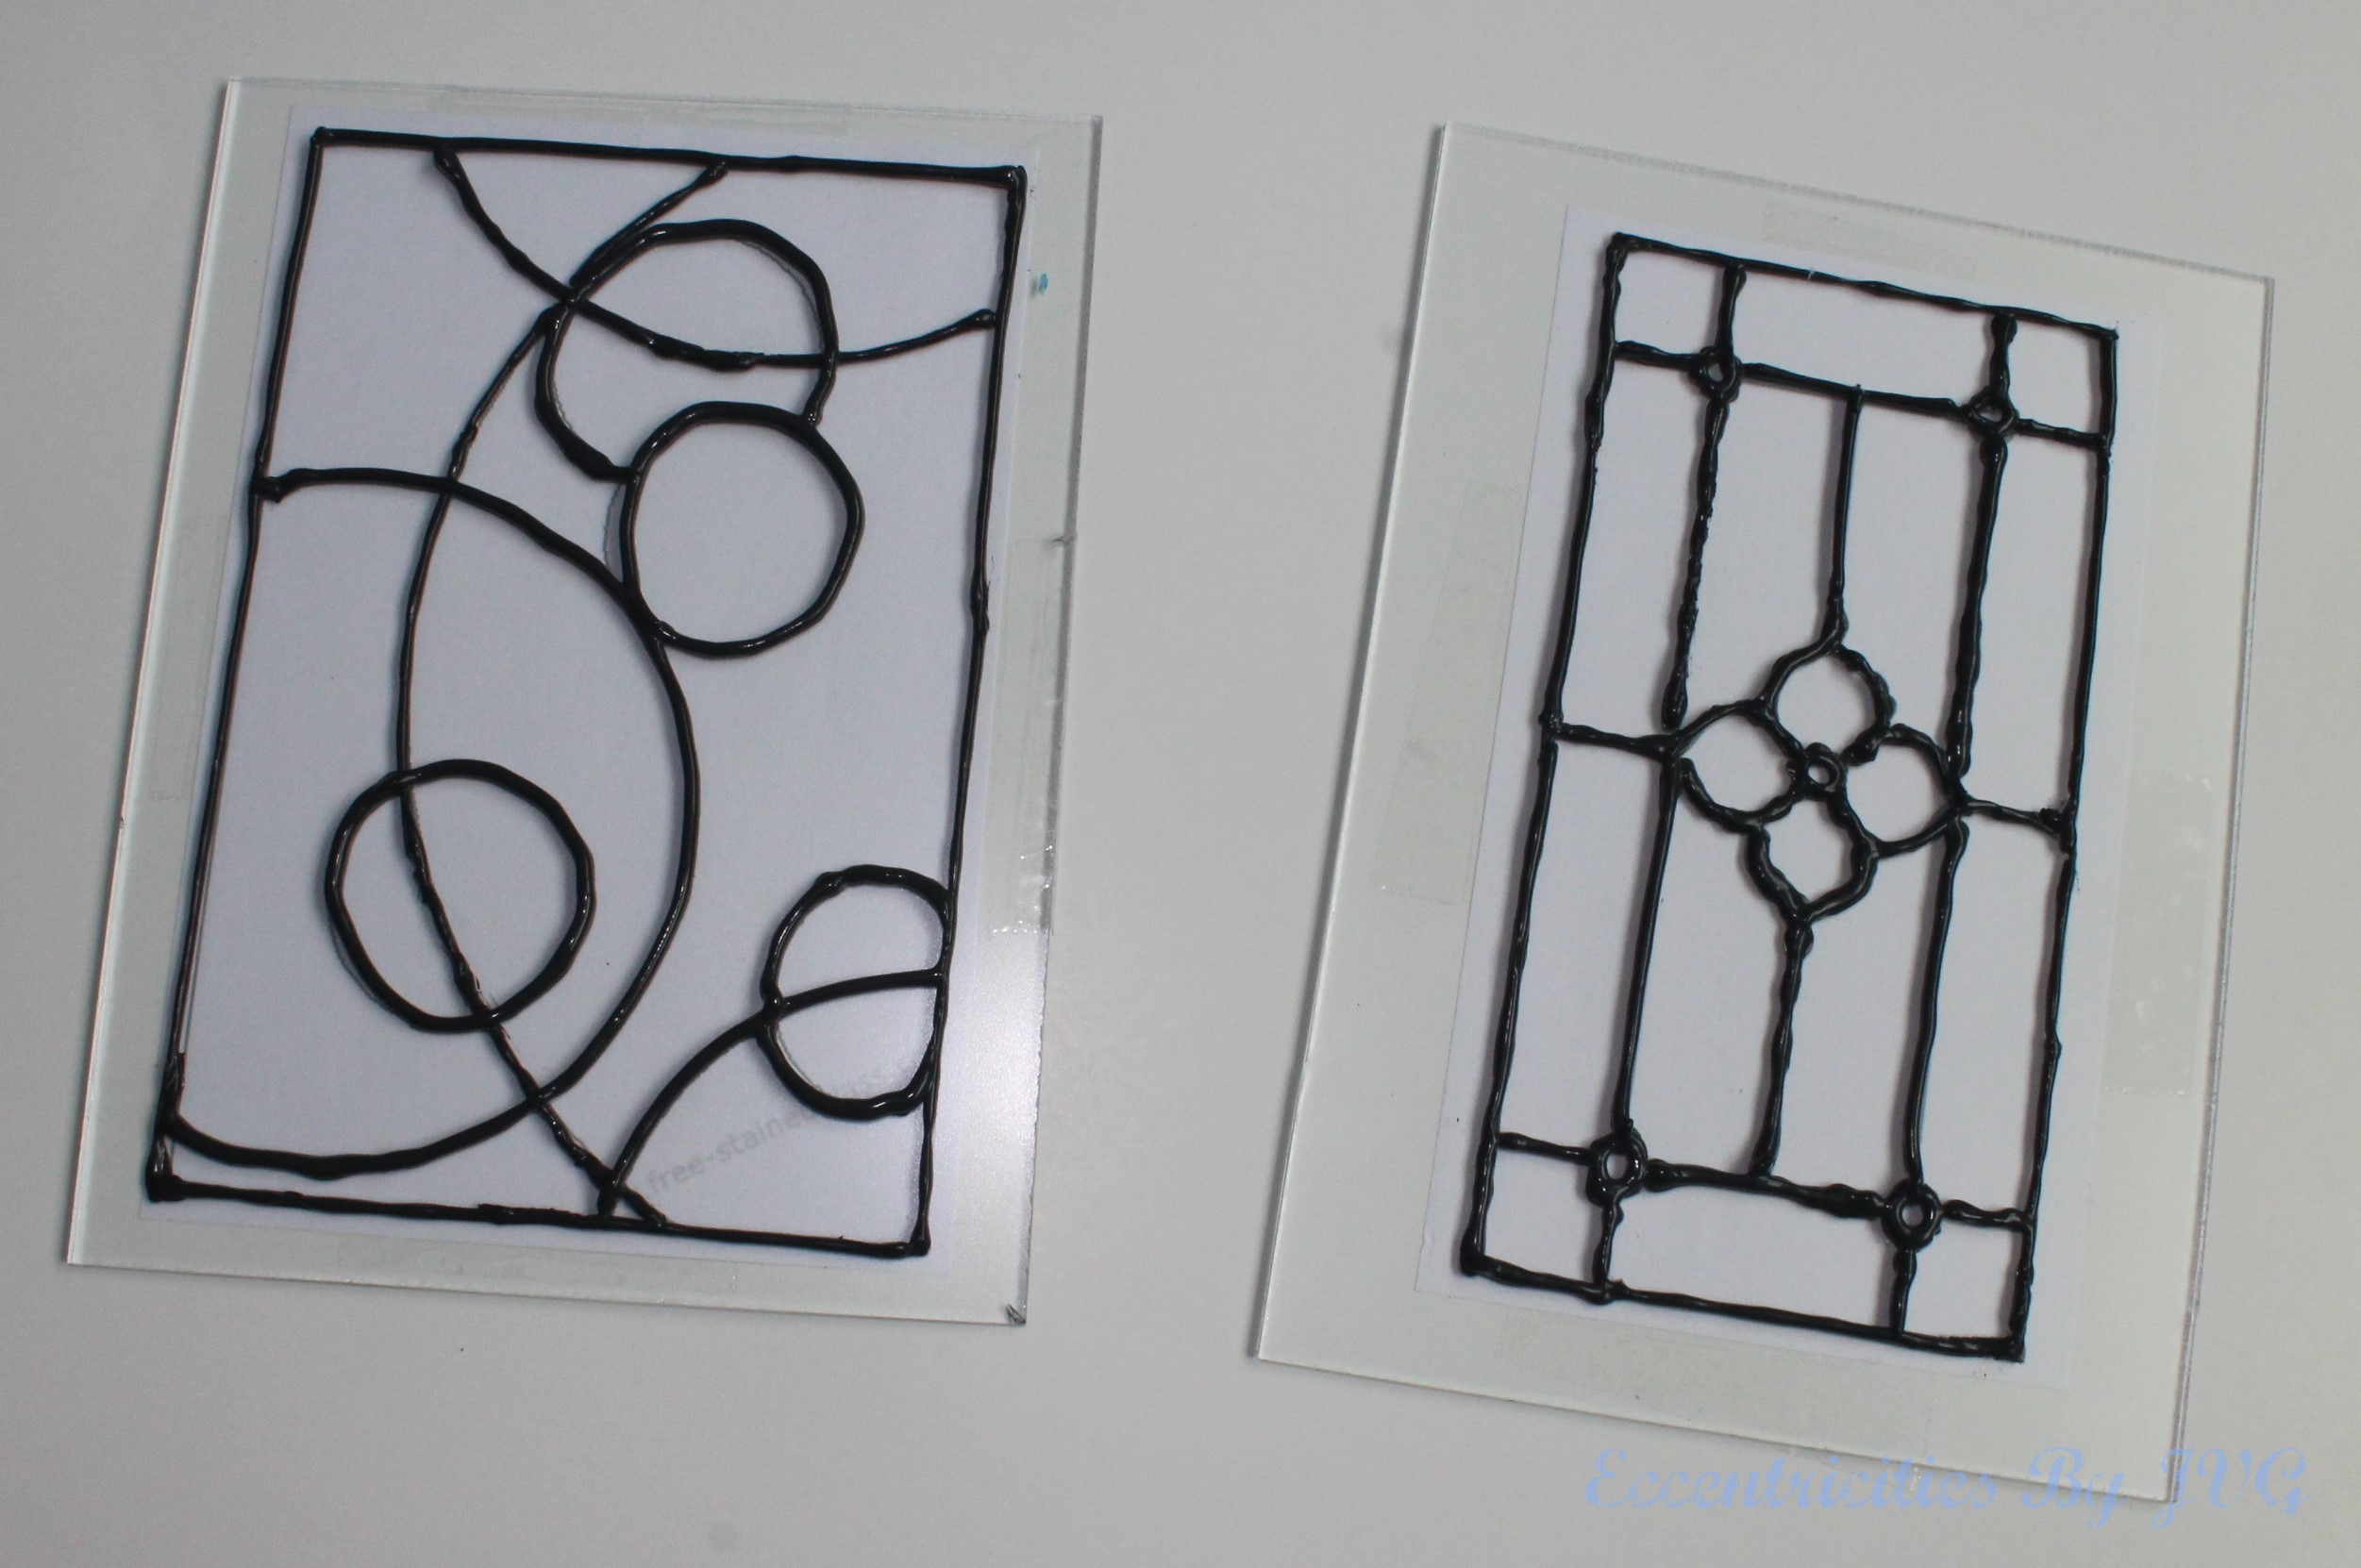 apply the leading to the stain glass art